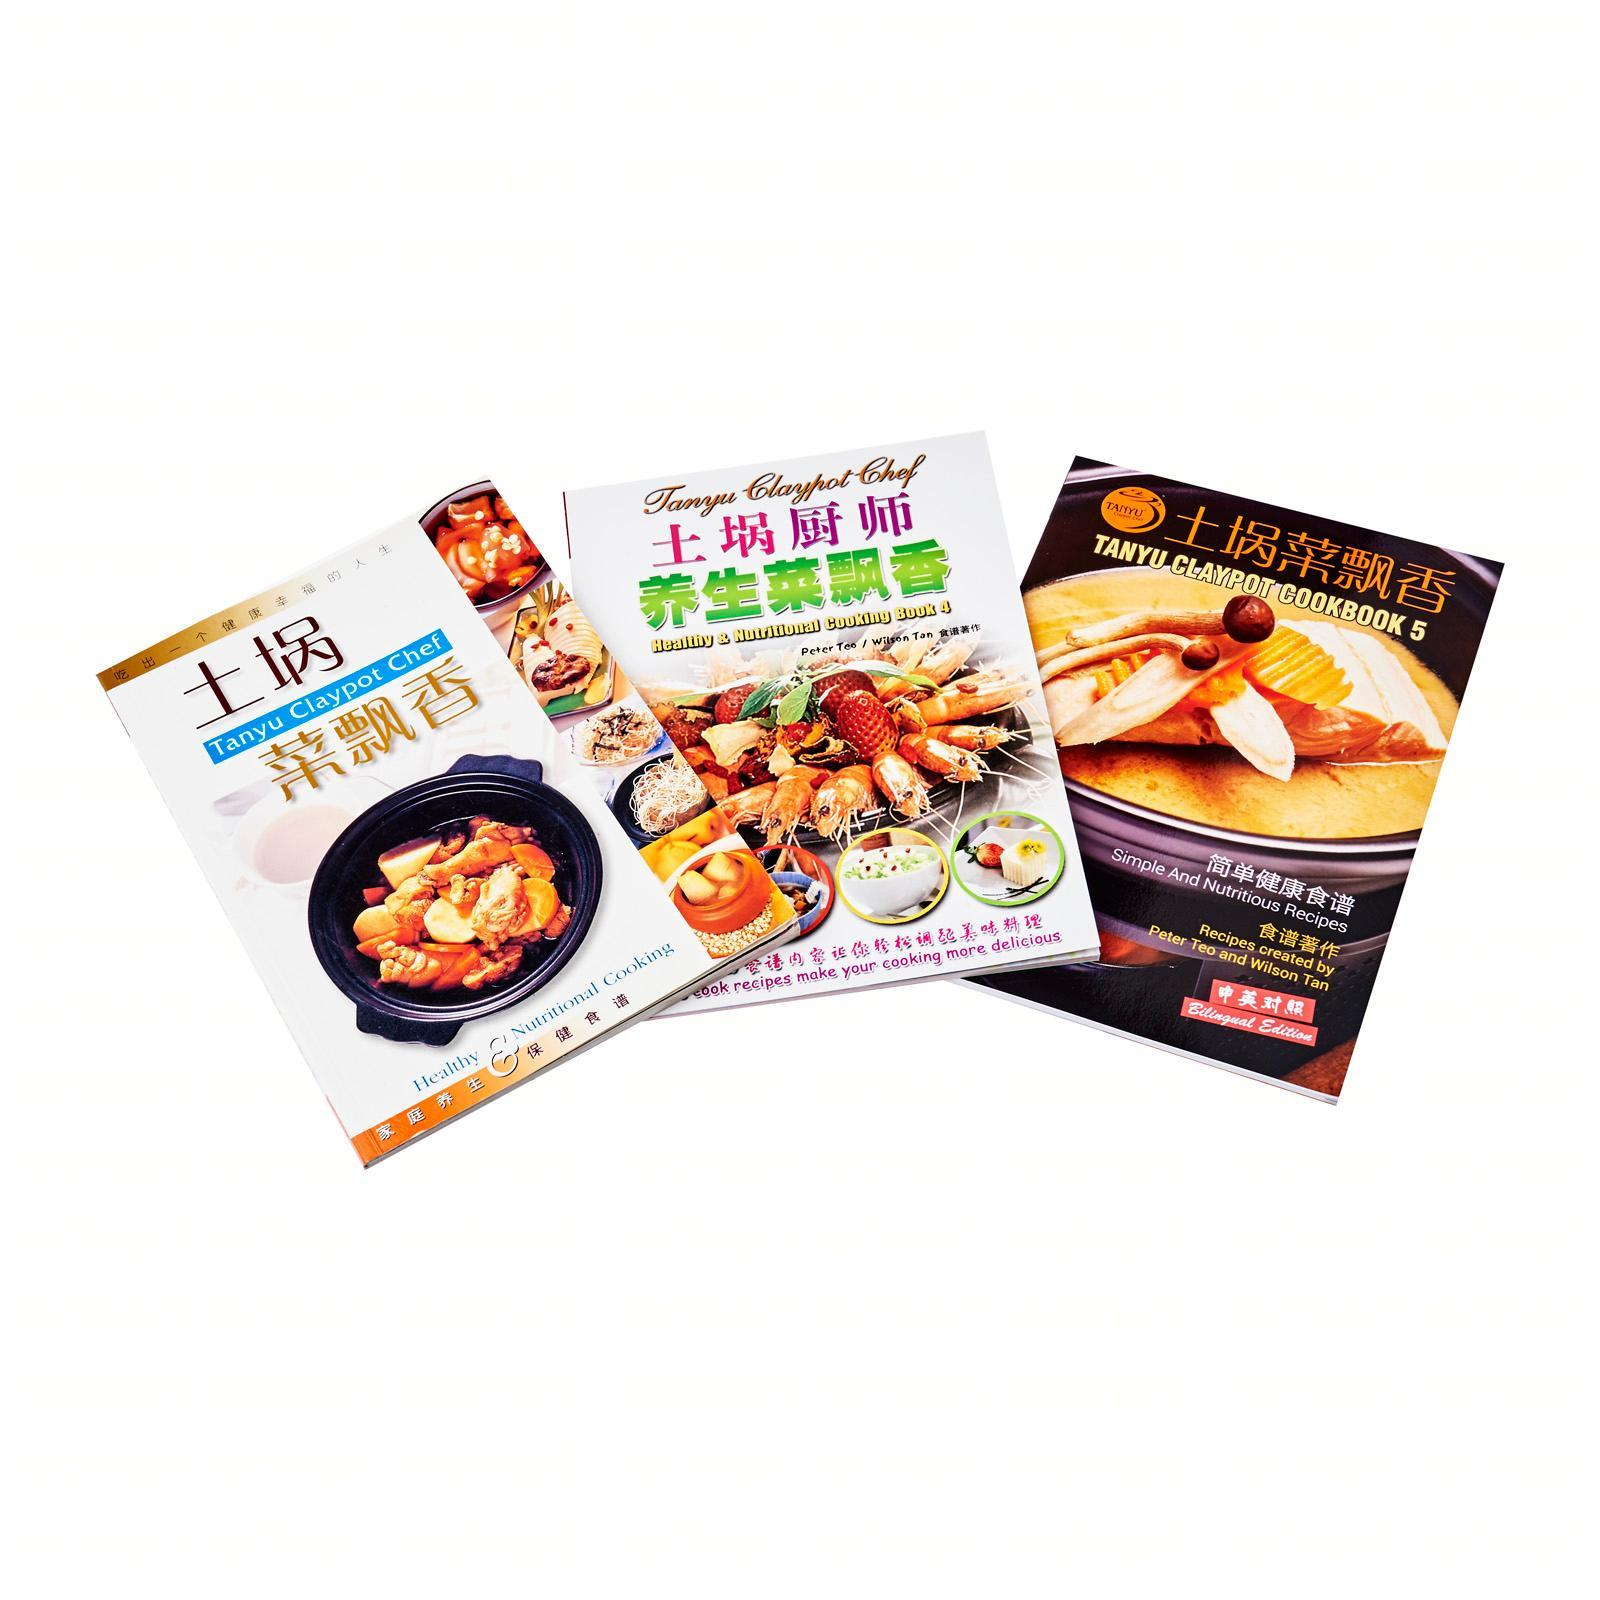 Tanyu Claypot Chef Simple And Nutritional Recipes Cooking Book Set